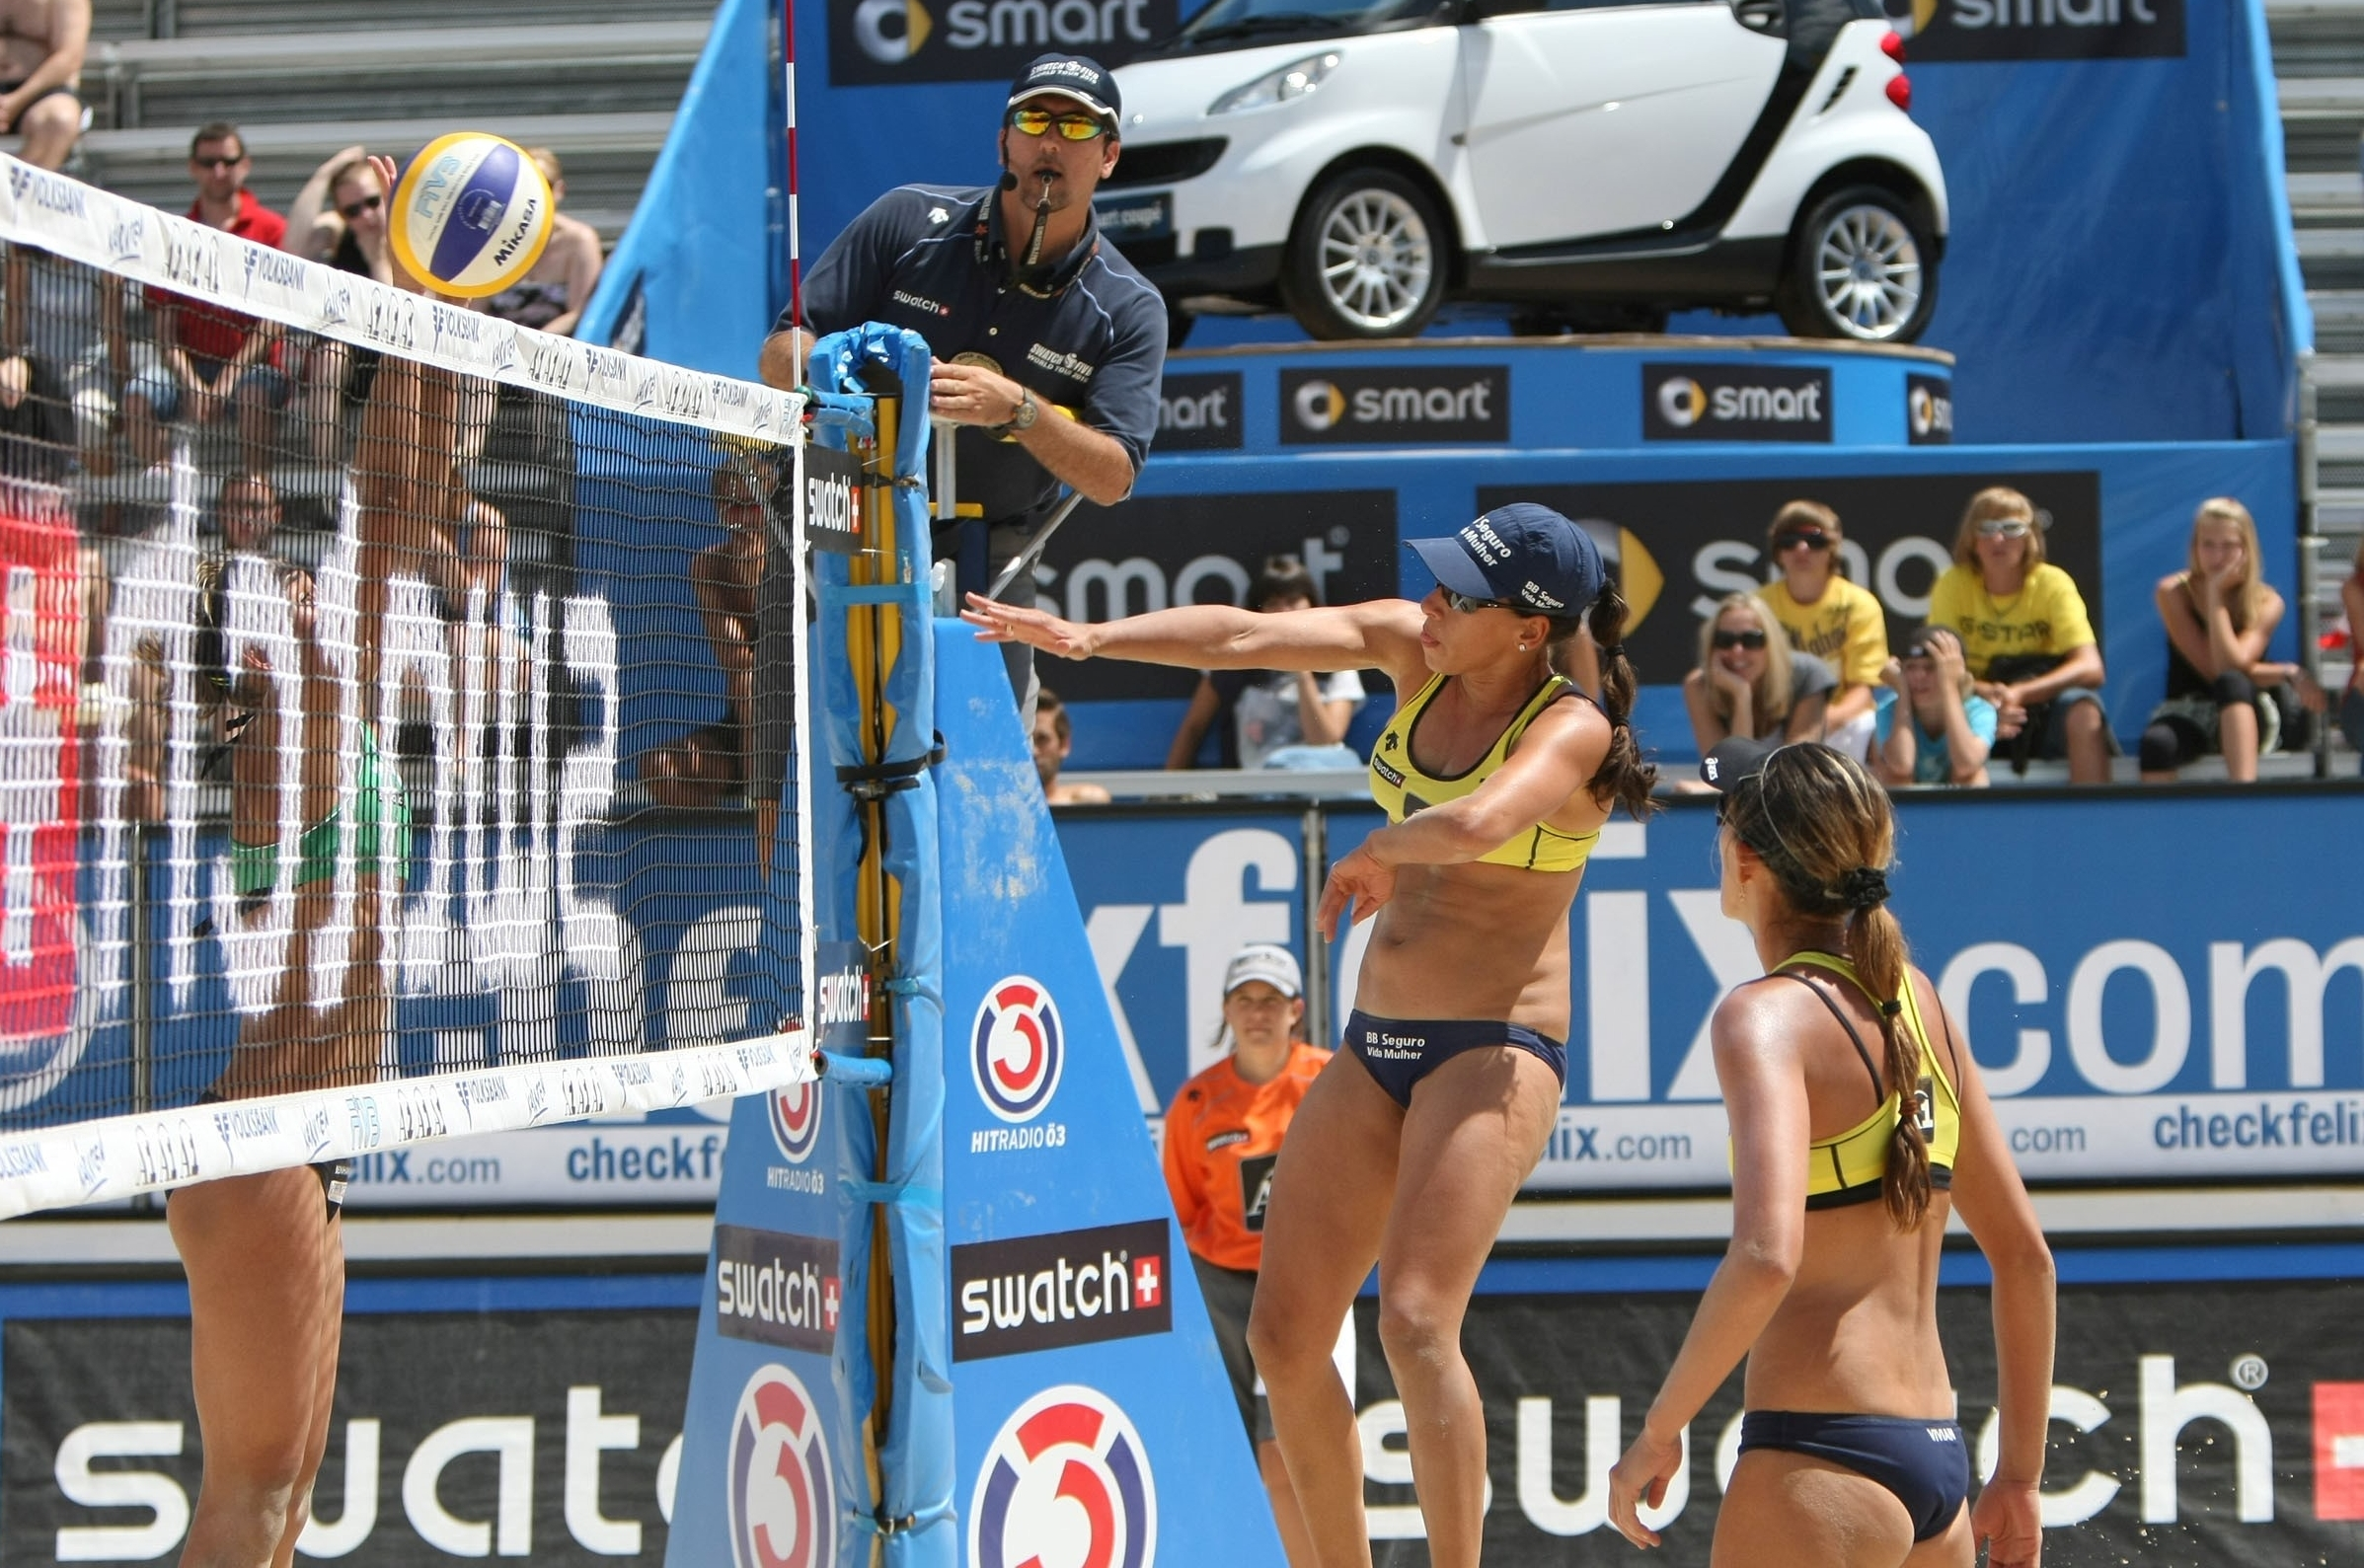 Drago Preslac stopped working as engineer to follow his passion of being beach volleyball referee. Photocredit: FIVB